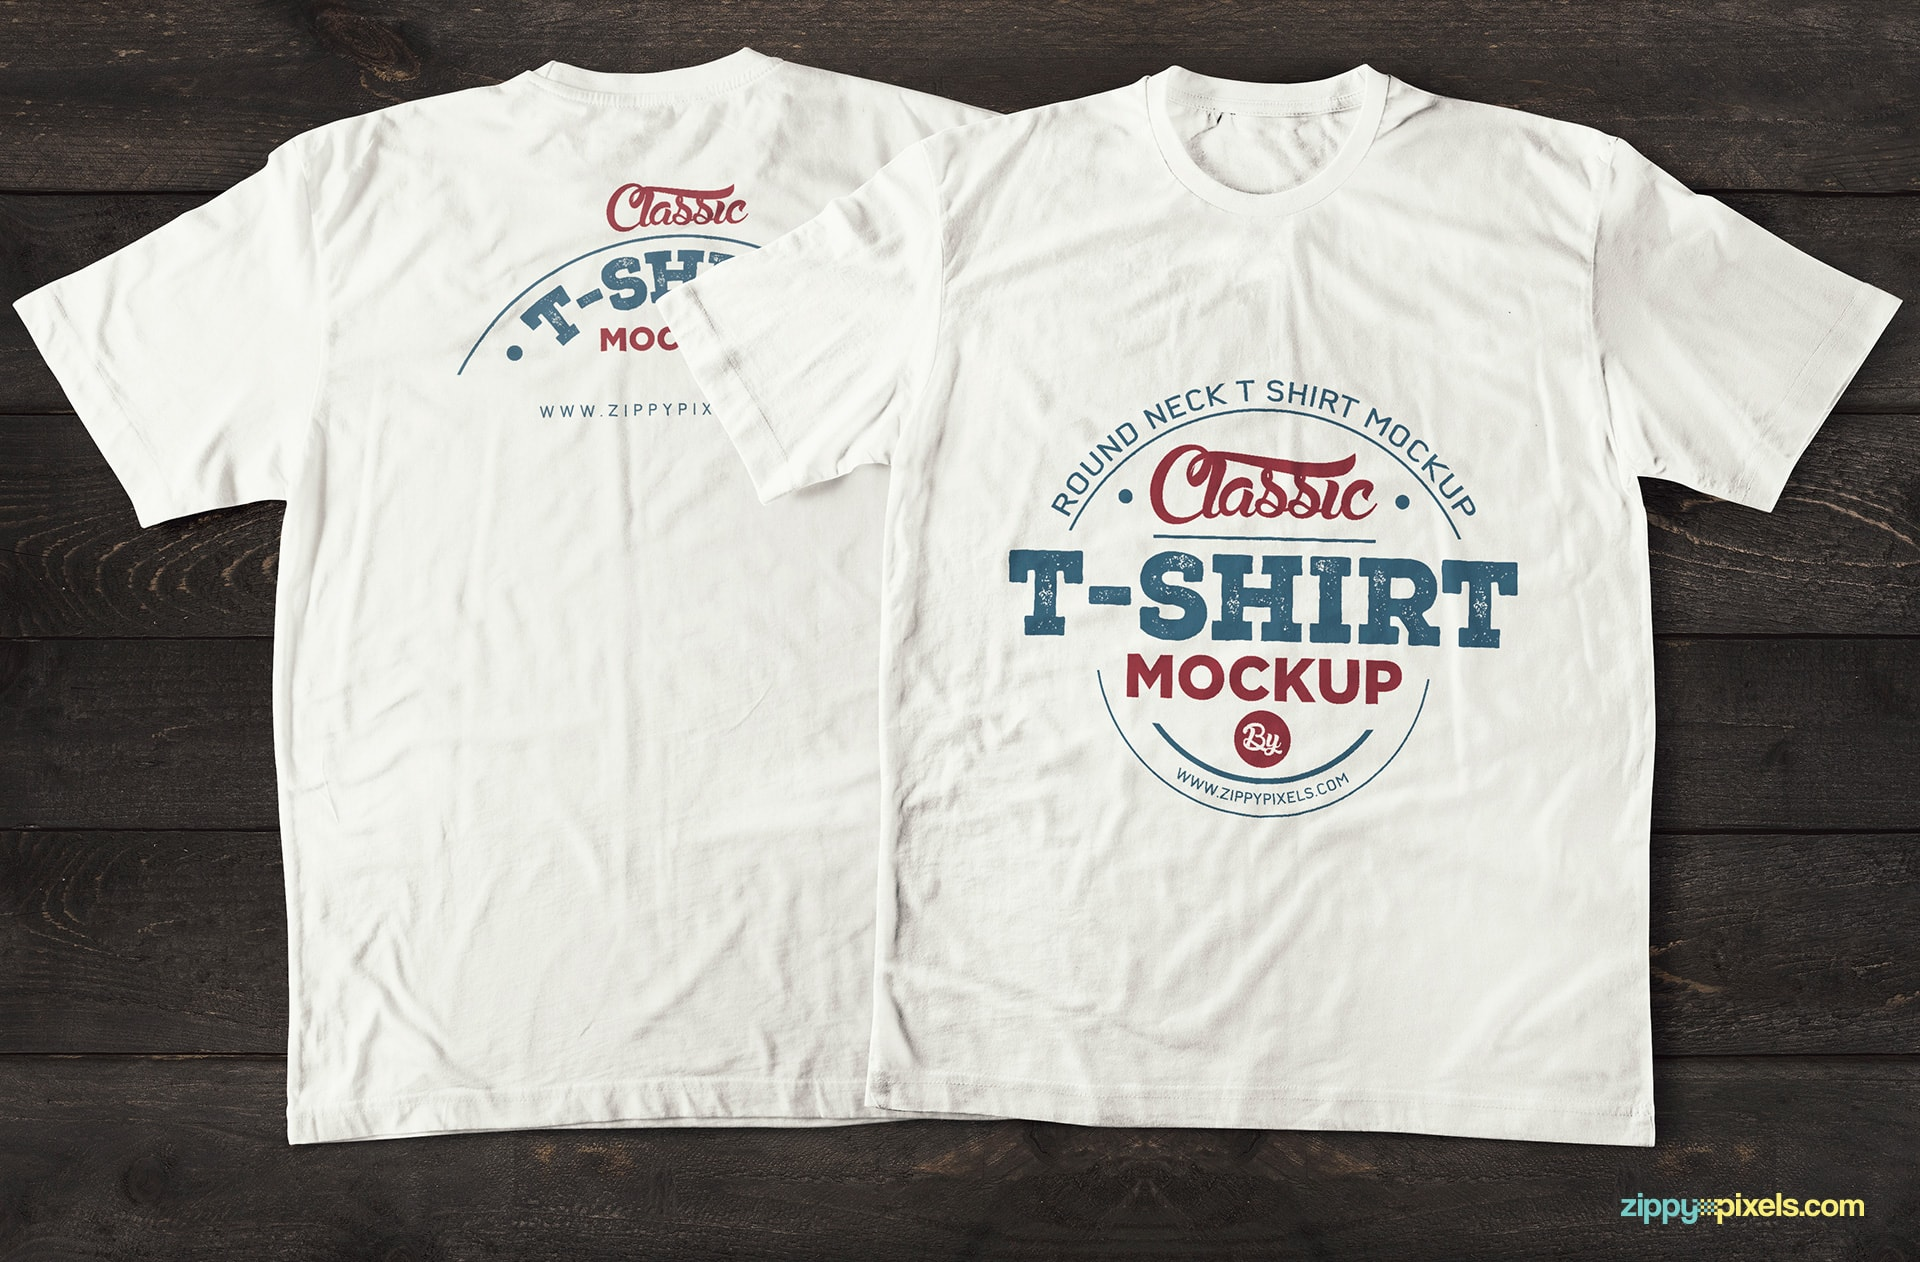 Front and BackVintage Styled T-Shirt Mockup